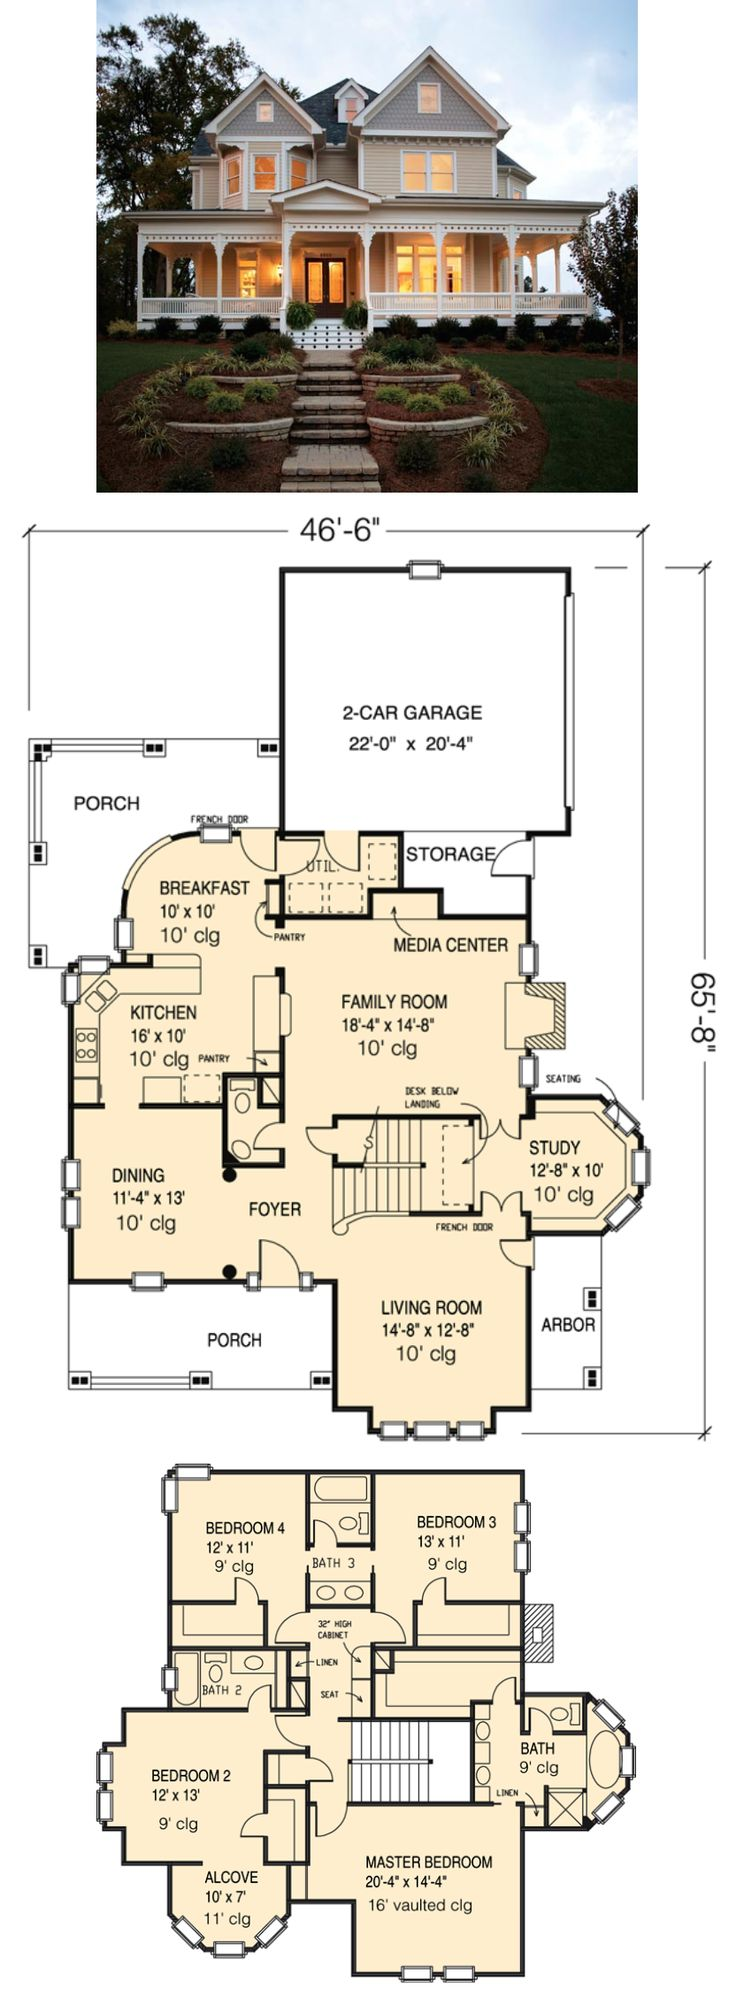 Miraculous 17 Best Ideas About House Plans On Pinterest Country House Plans Largest Home Design Picture Inspirations Pitcheantrous